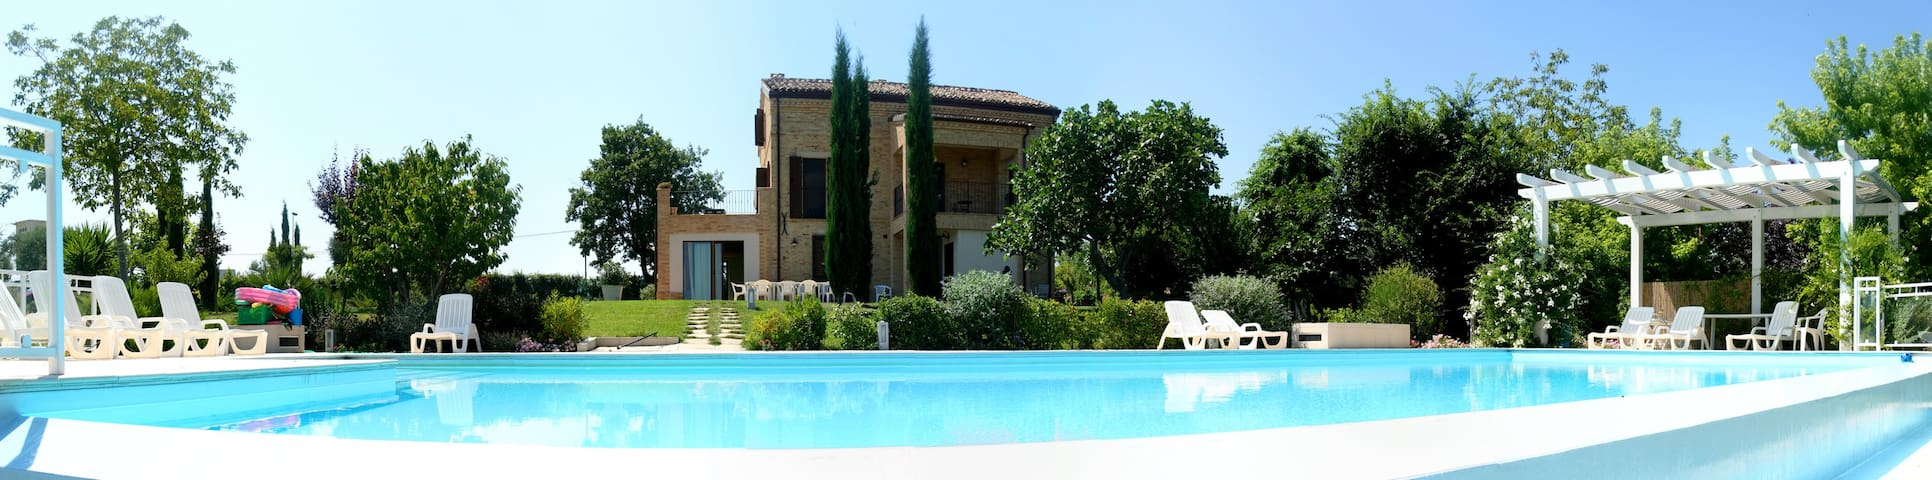 Villa with pool - 3 Apartments